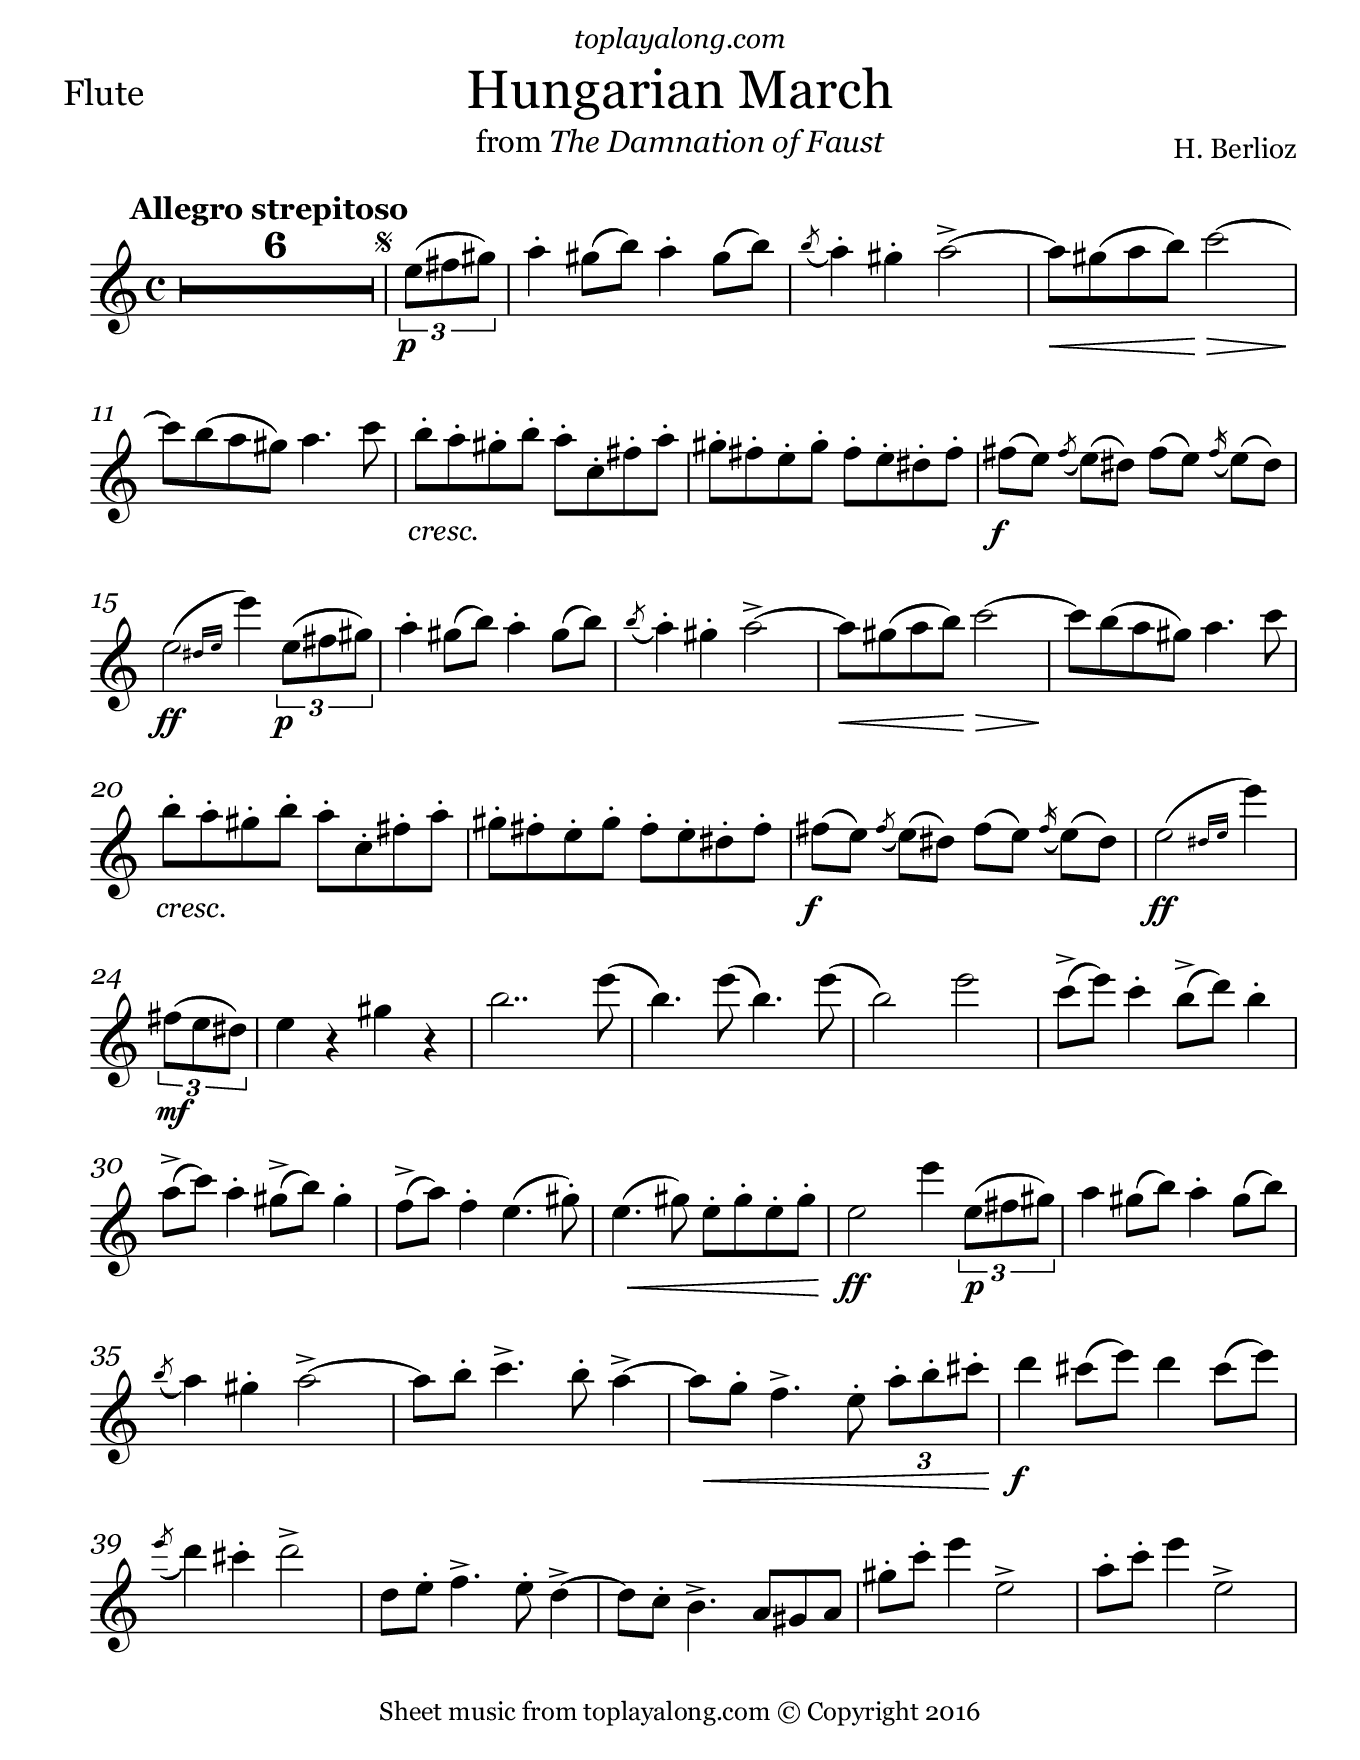 Hungarian March from Faust by Berlioz. Sheet music for Flute, page 1.